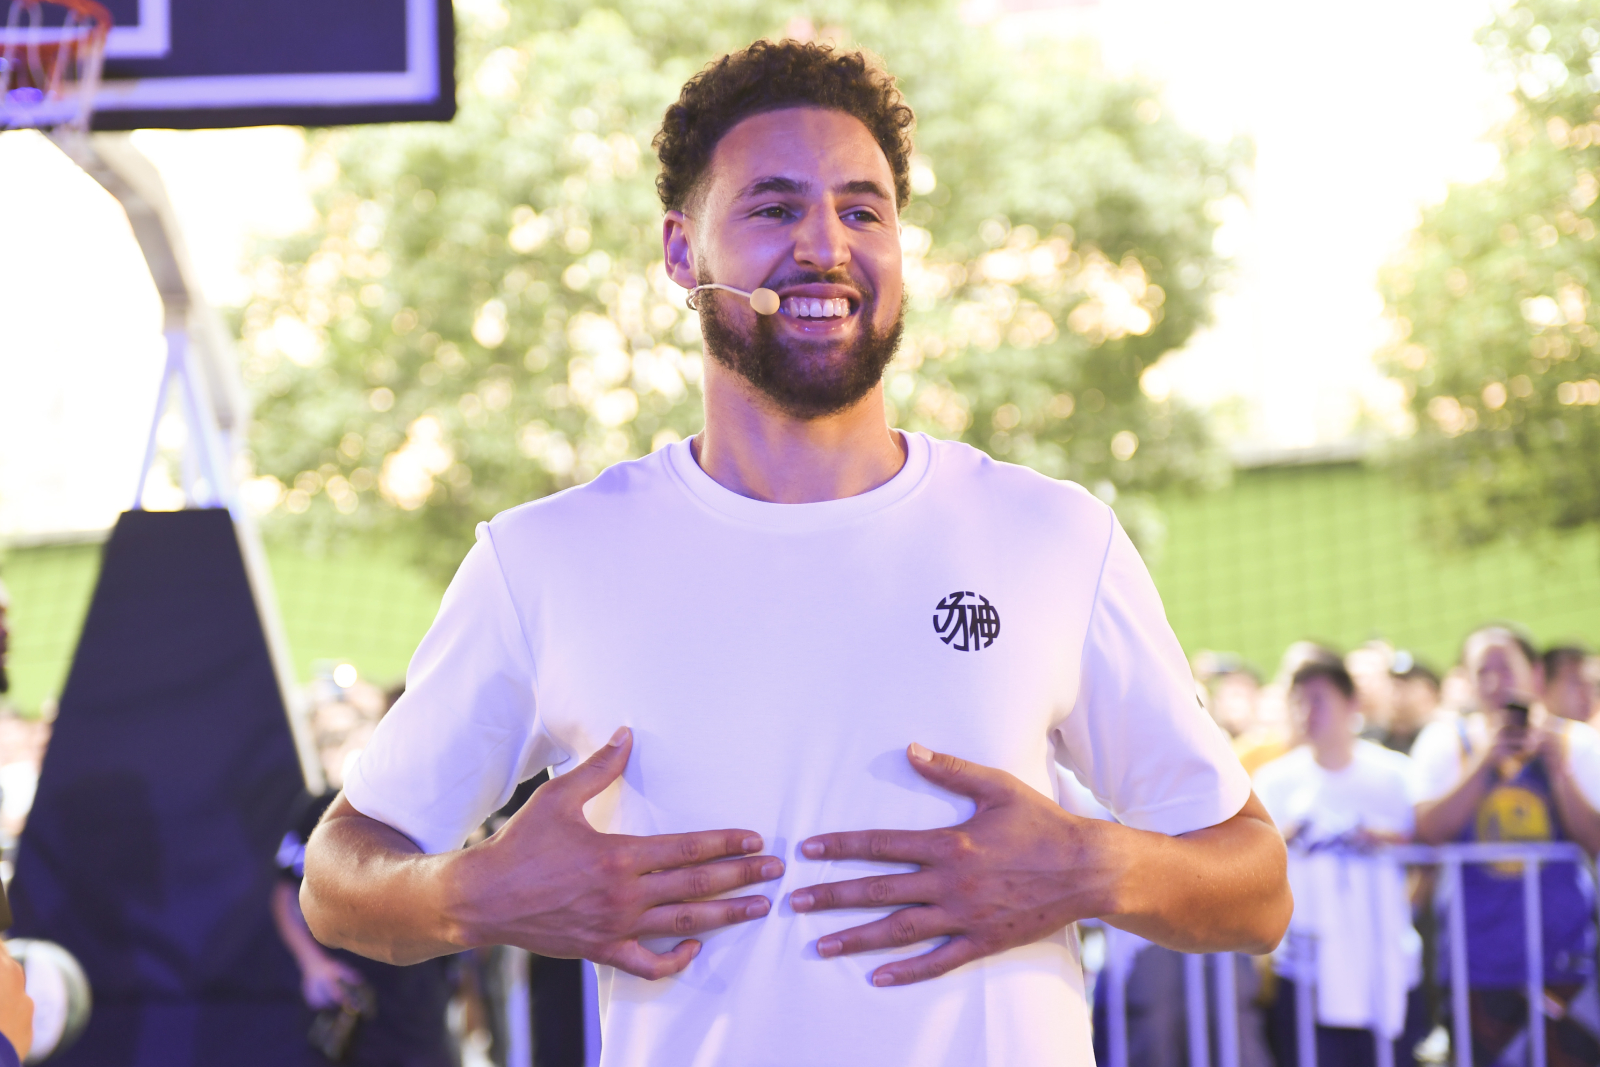 Klay Thompson has been a great player and has had some interesting endorsement deals. Now, his new one is taking him back to his childhood.